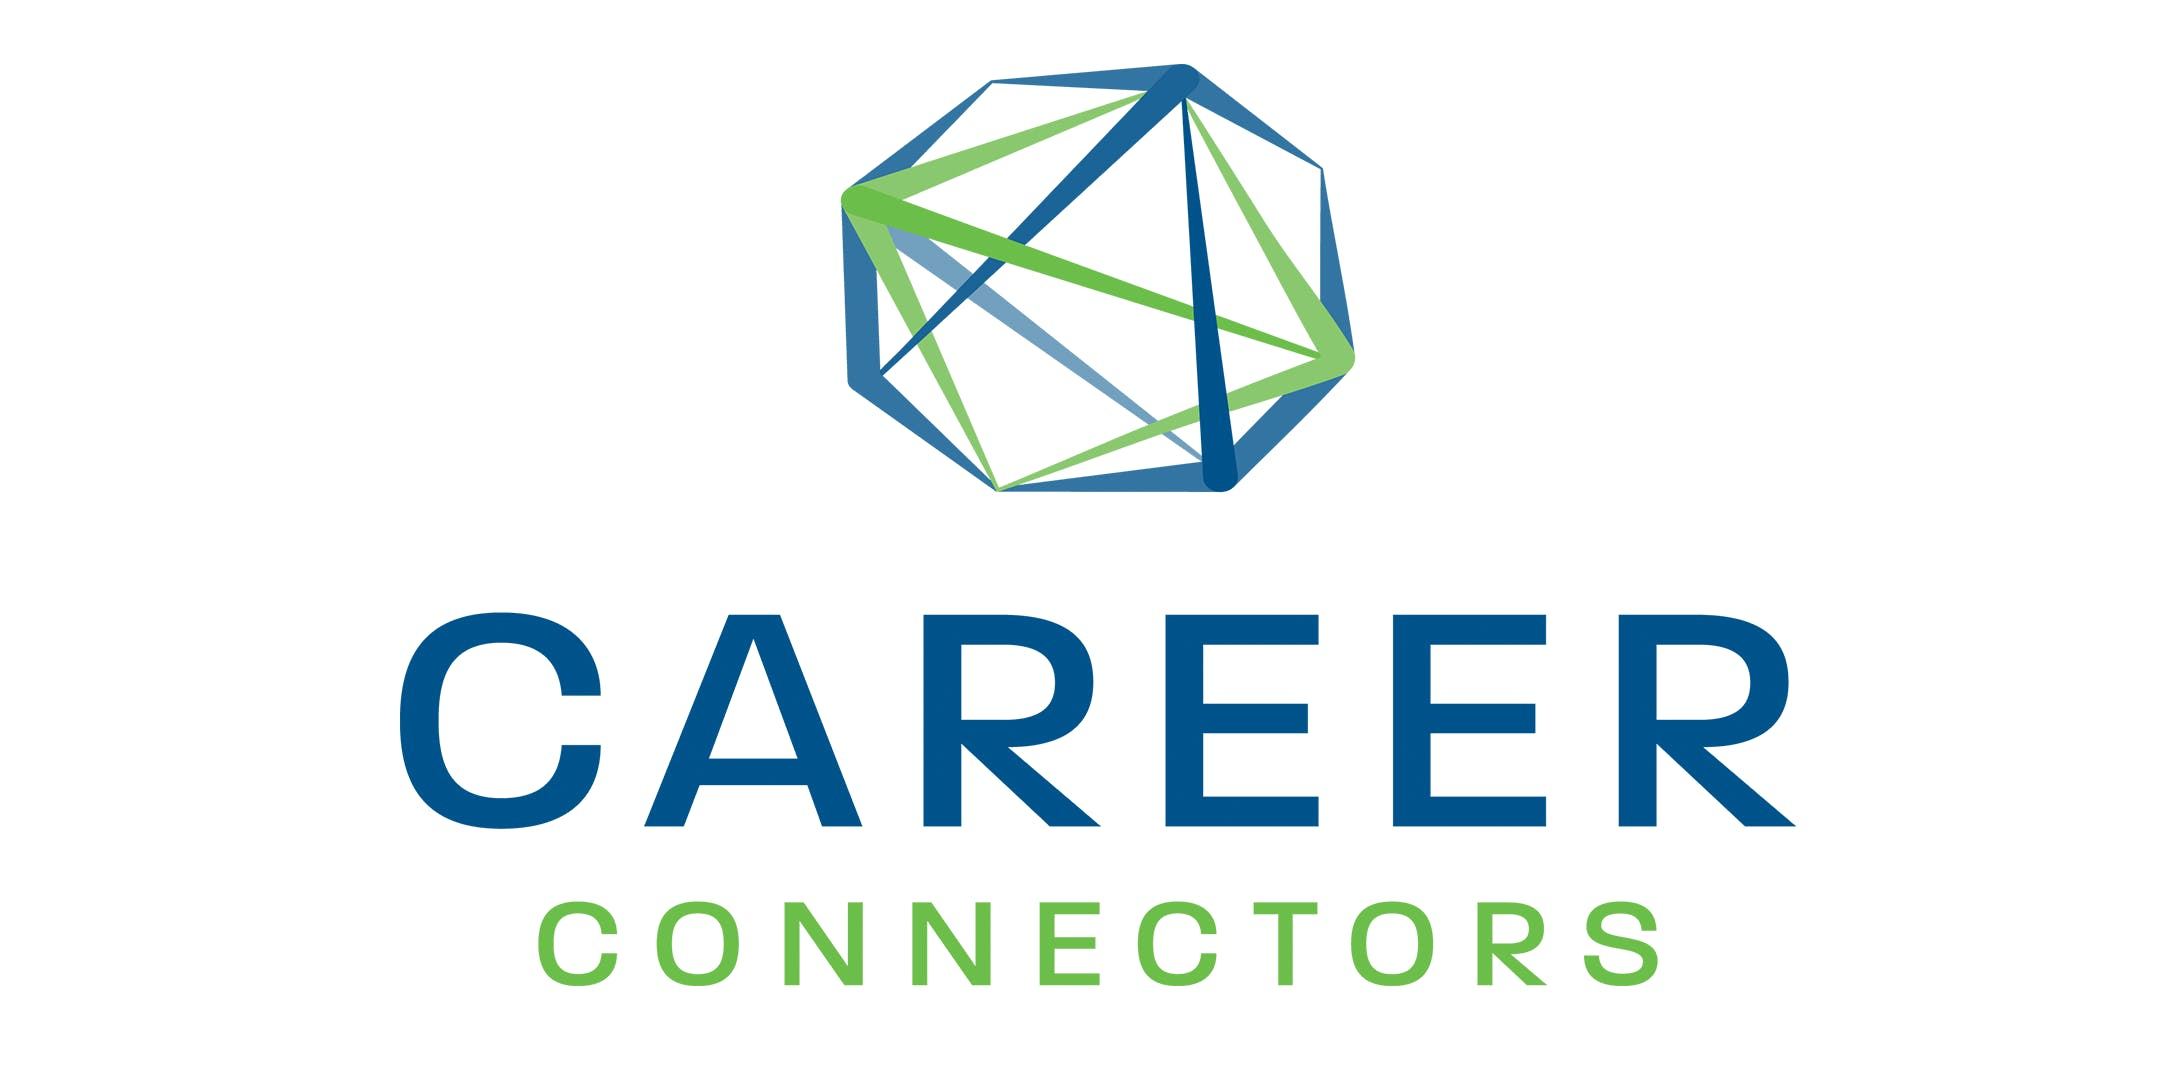 Phoenix - Boost Your Career Reach by Connecting with Staffing Firms | Panel: NESCO Resource, vCandidates, Tech Finders